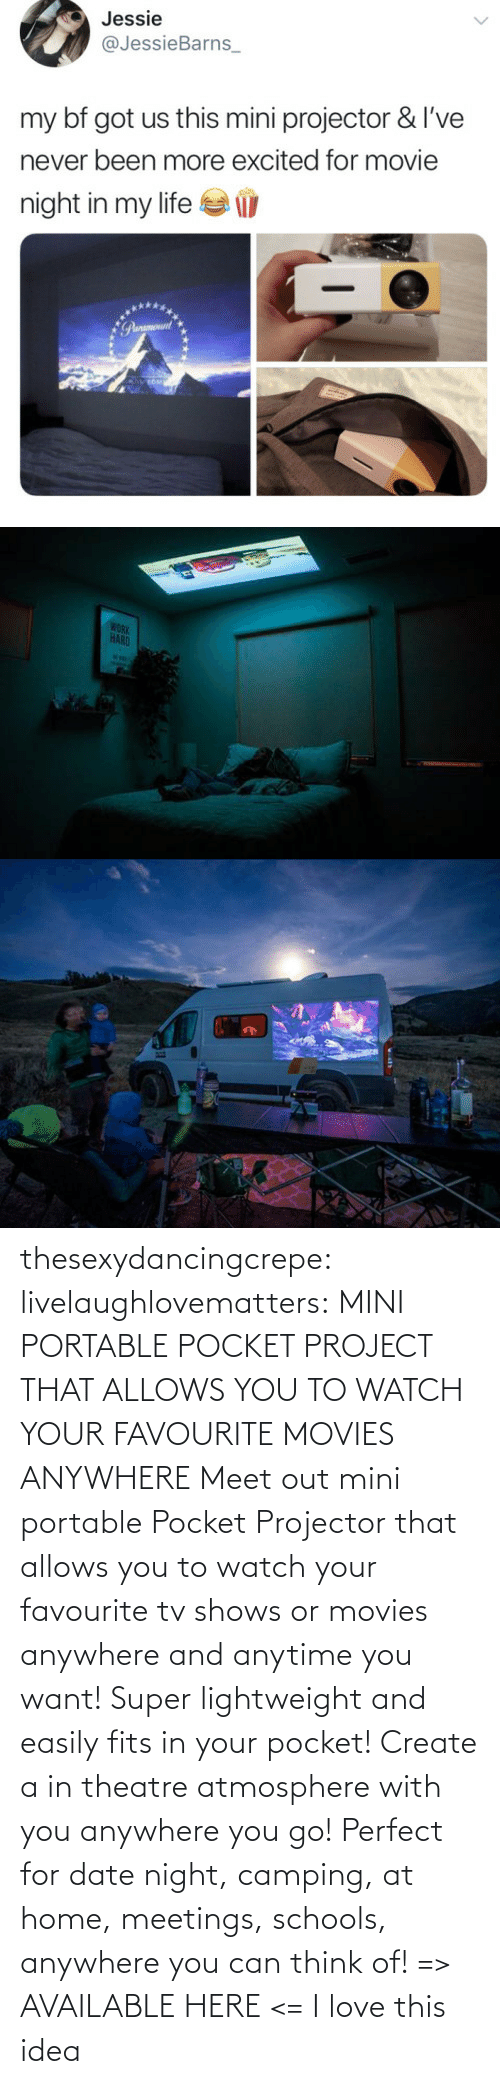 create a: thesexydancingcrepe: livelaughlovematters:   MINI PORTABLE POCKET PROJECT THAT ALLOWS YOU TO WATCH YOUR FAVOURITE MOVIES ANYWHERE Meet out mini portable Pocket Projector that allows you to watch your favourite tv shows or movies anywhere and anytime you want! Super lightweight and easily fits in your pocket! Create a in theatre atmosphere with you anywhere you go! Perfect for date night, camping, at home, meetings, schools, anywhere you can think of! => AVAILABLE HERE <=    I love this idea